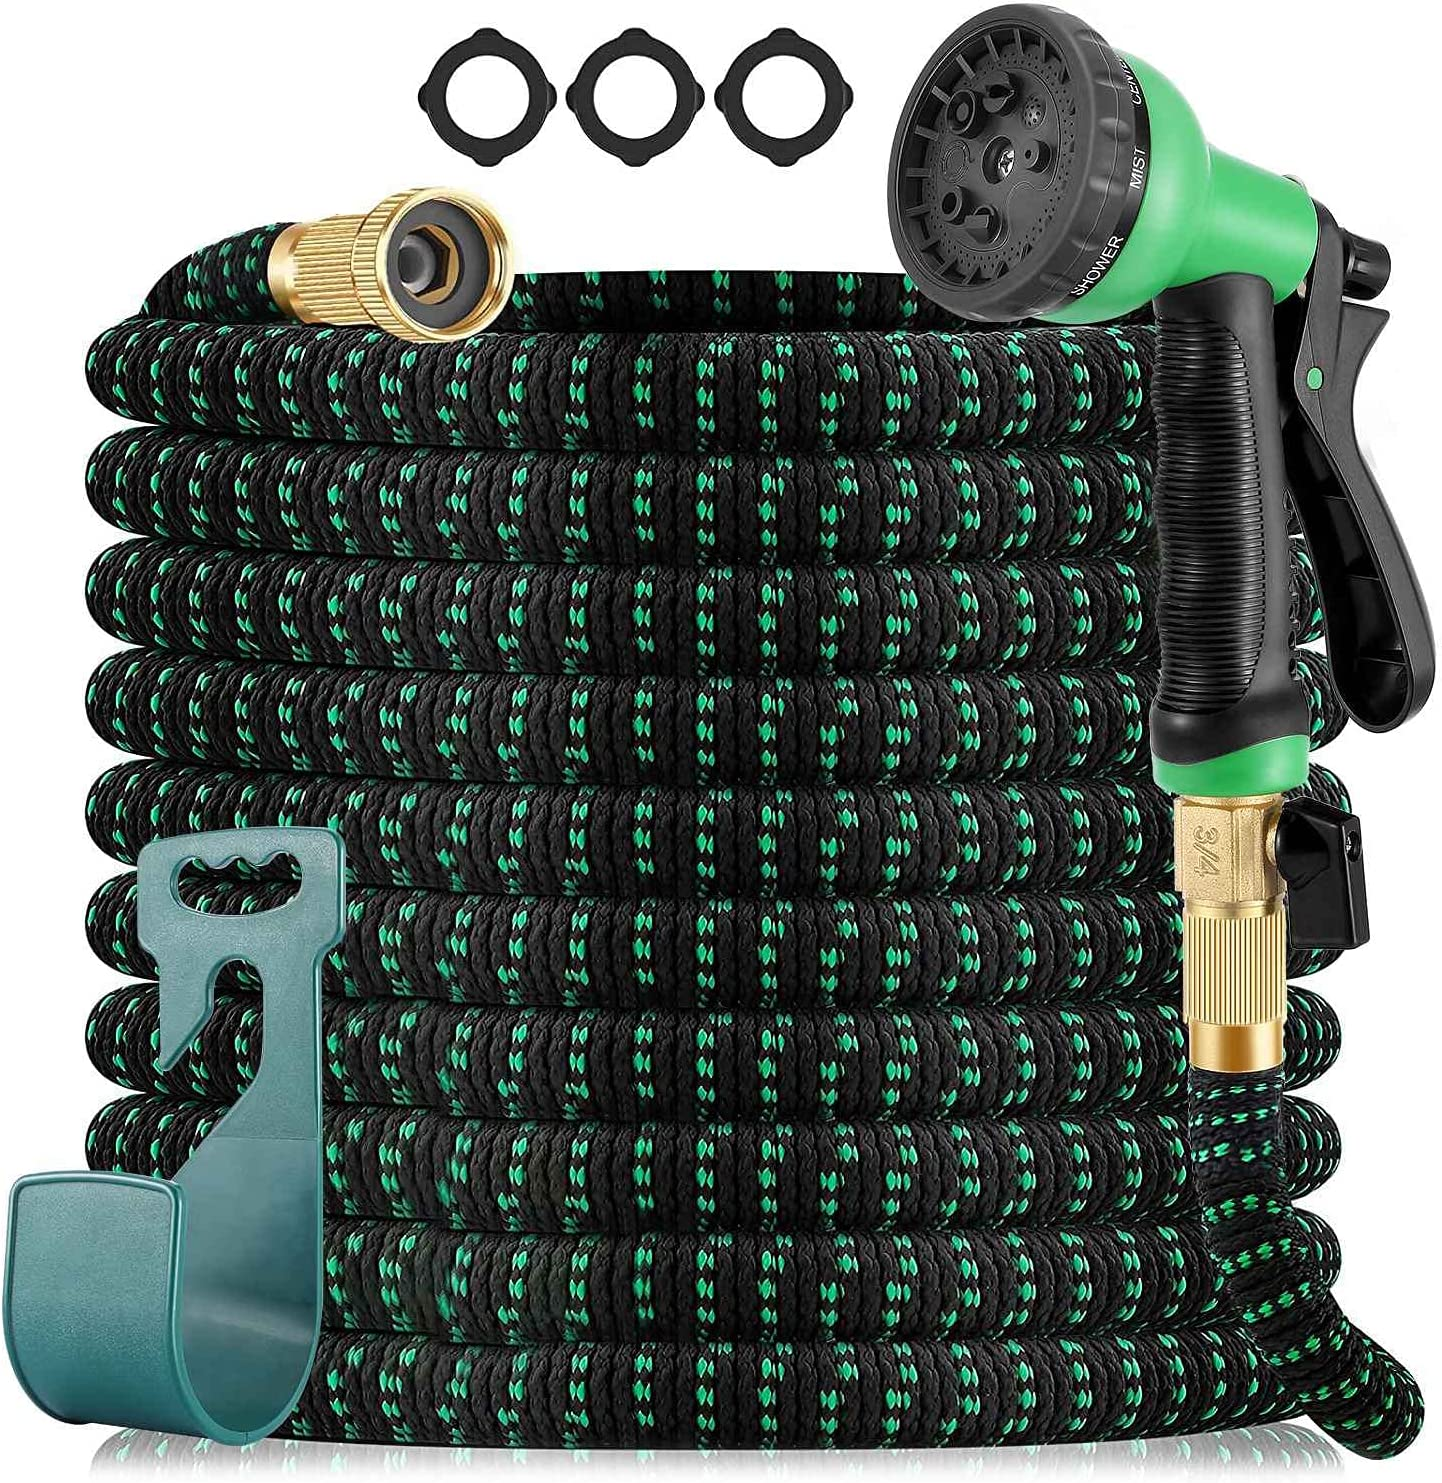 Expandable Garden Hose,50FT Upgraded Lightweight Hose Pipe 3 Layers of Latex, 3/4